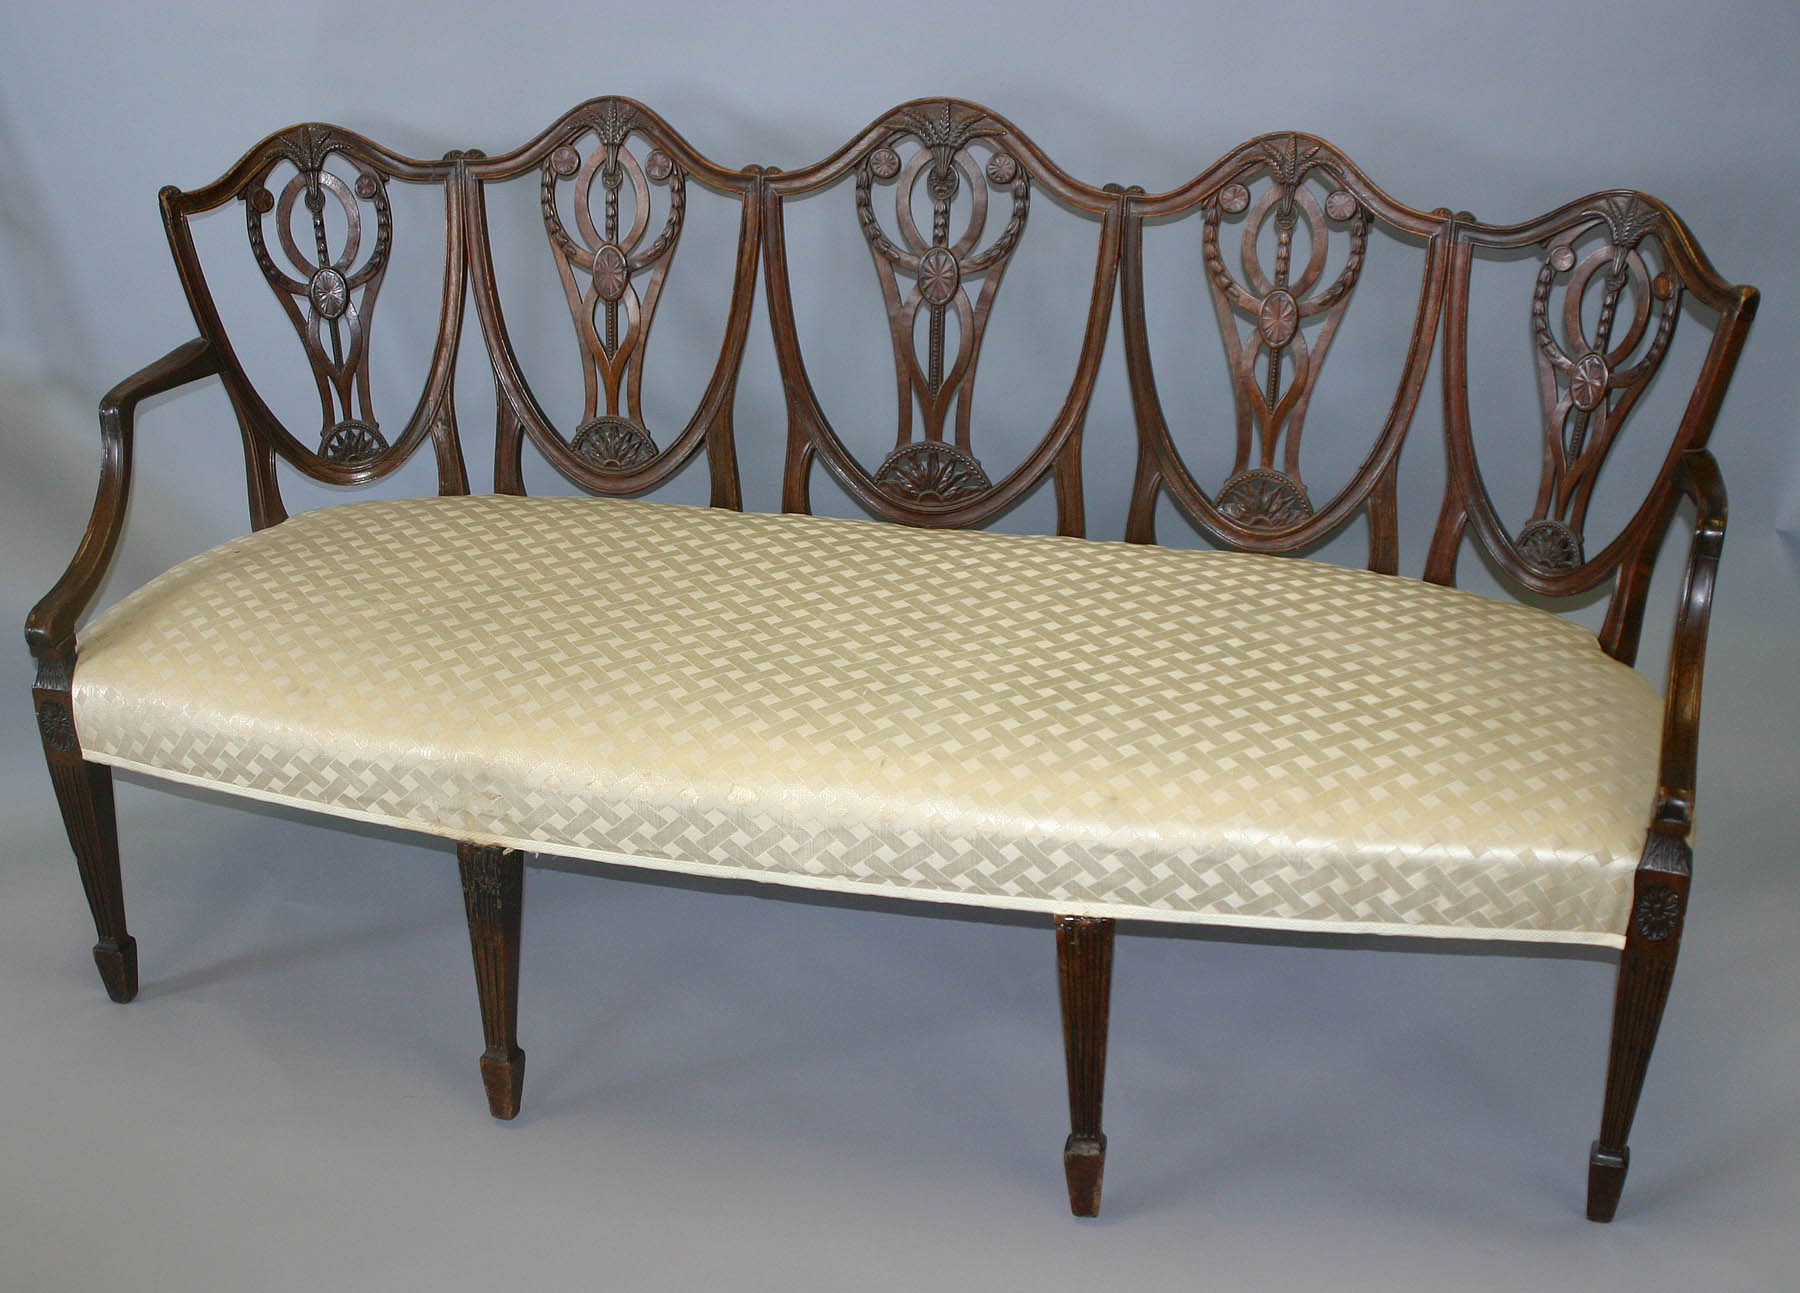 Rare, George III period, chair-back settee